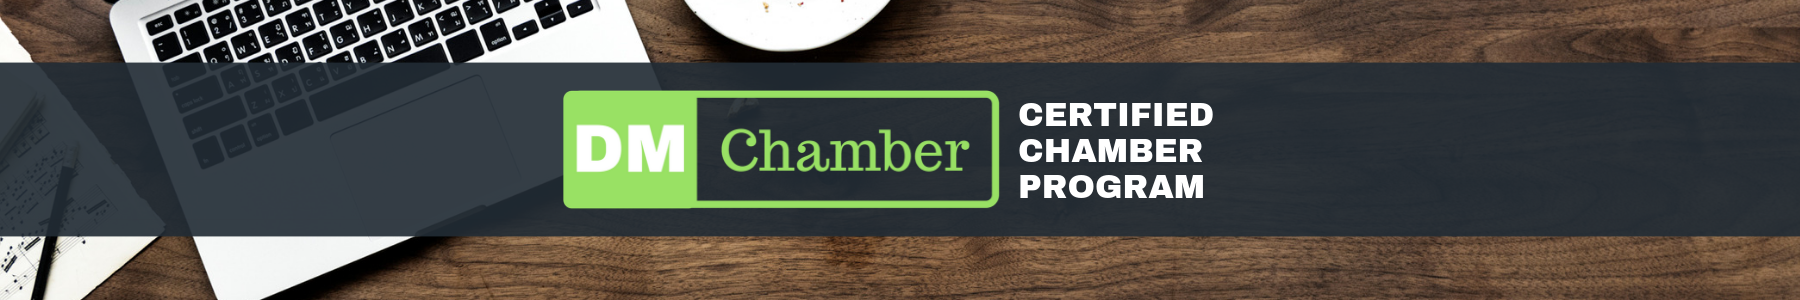 ChamberDM Certified Program (1).png